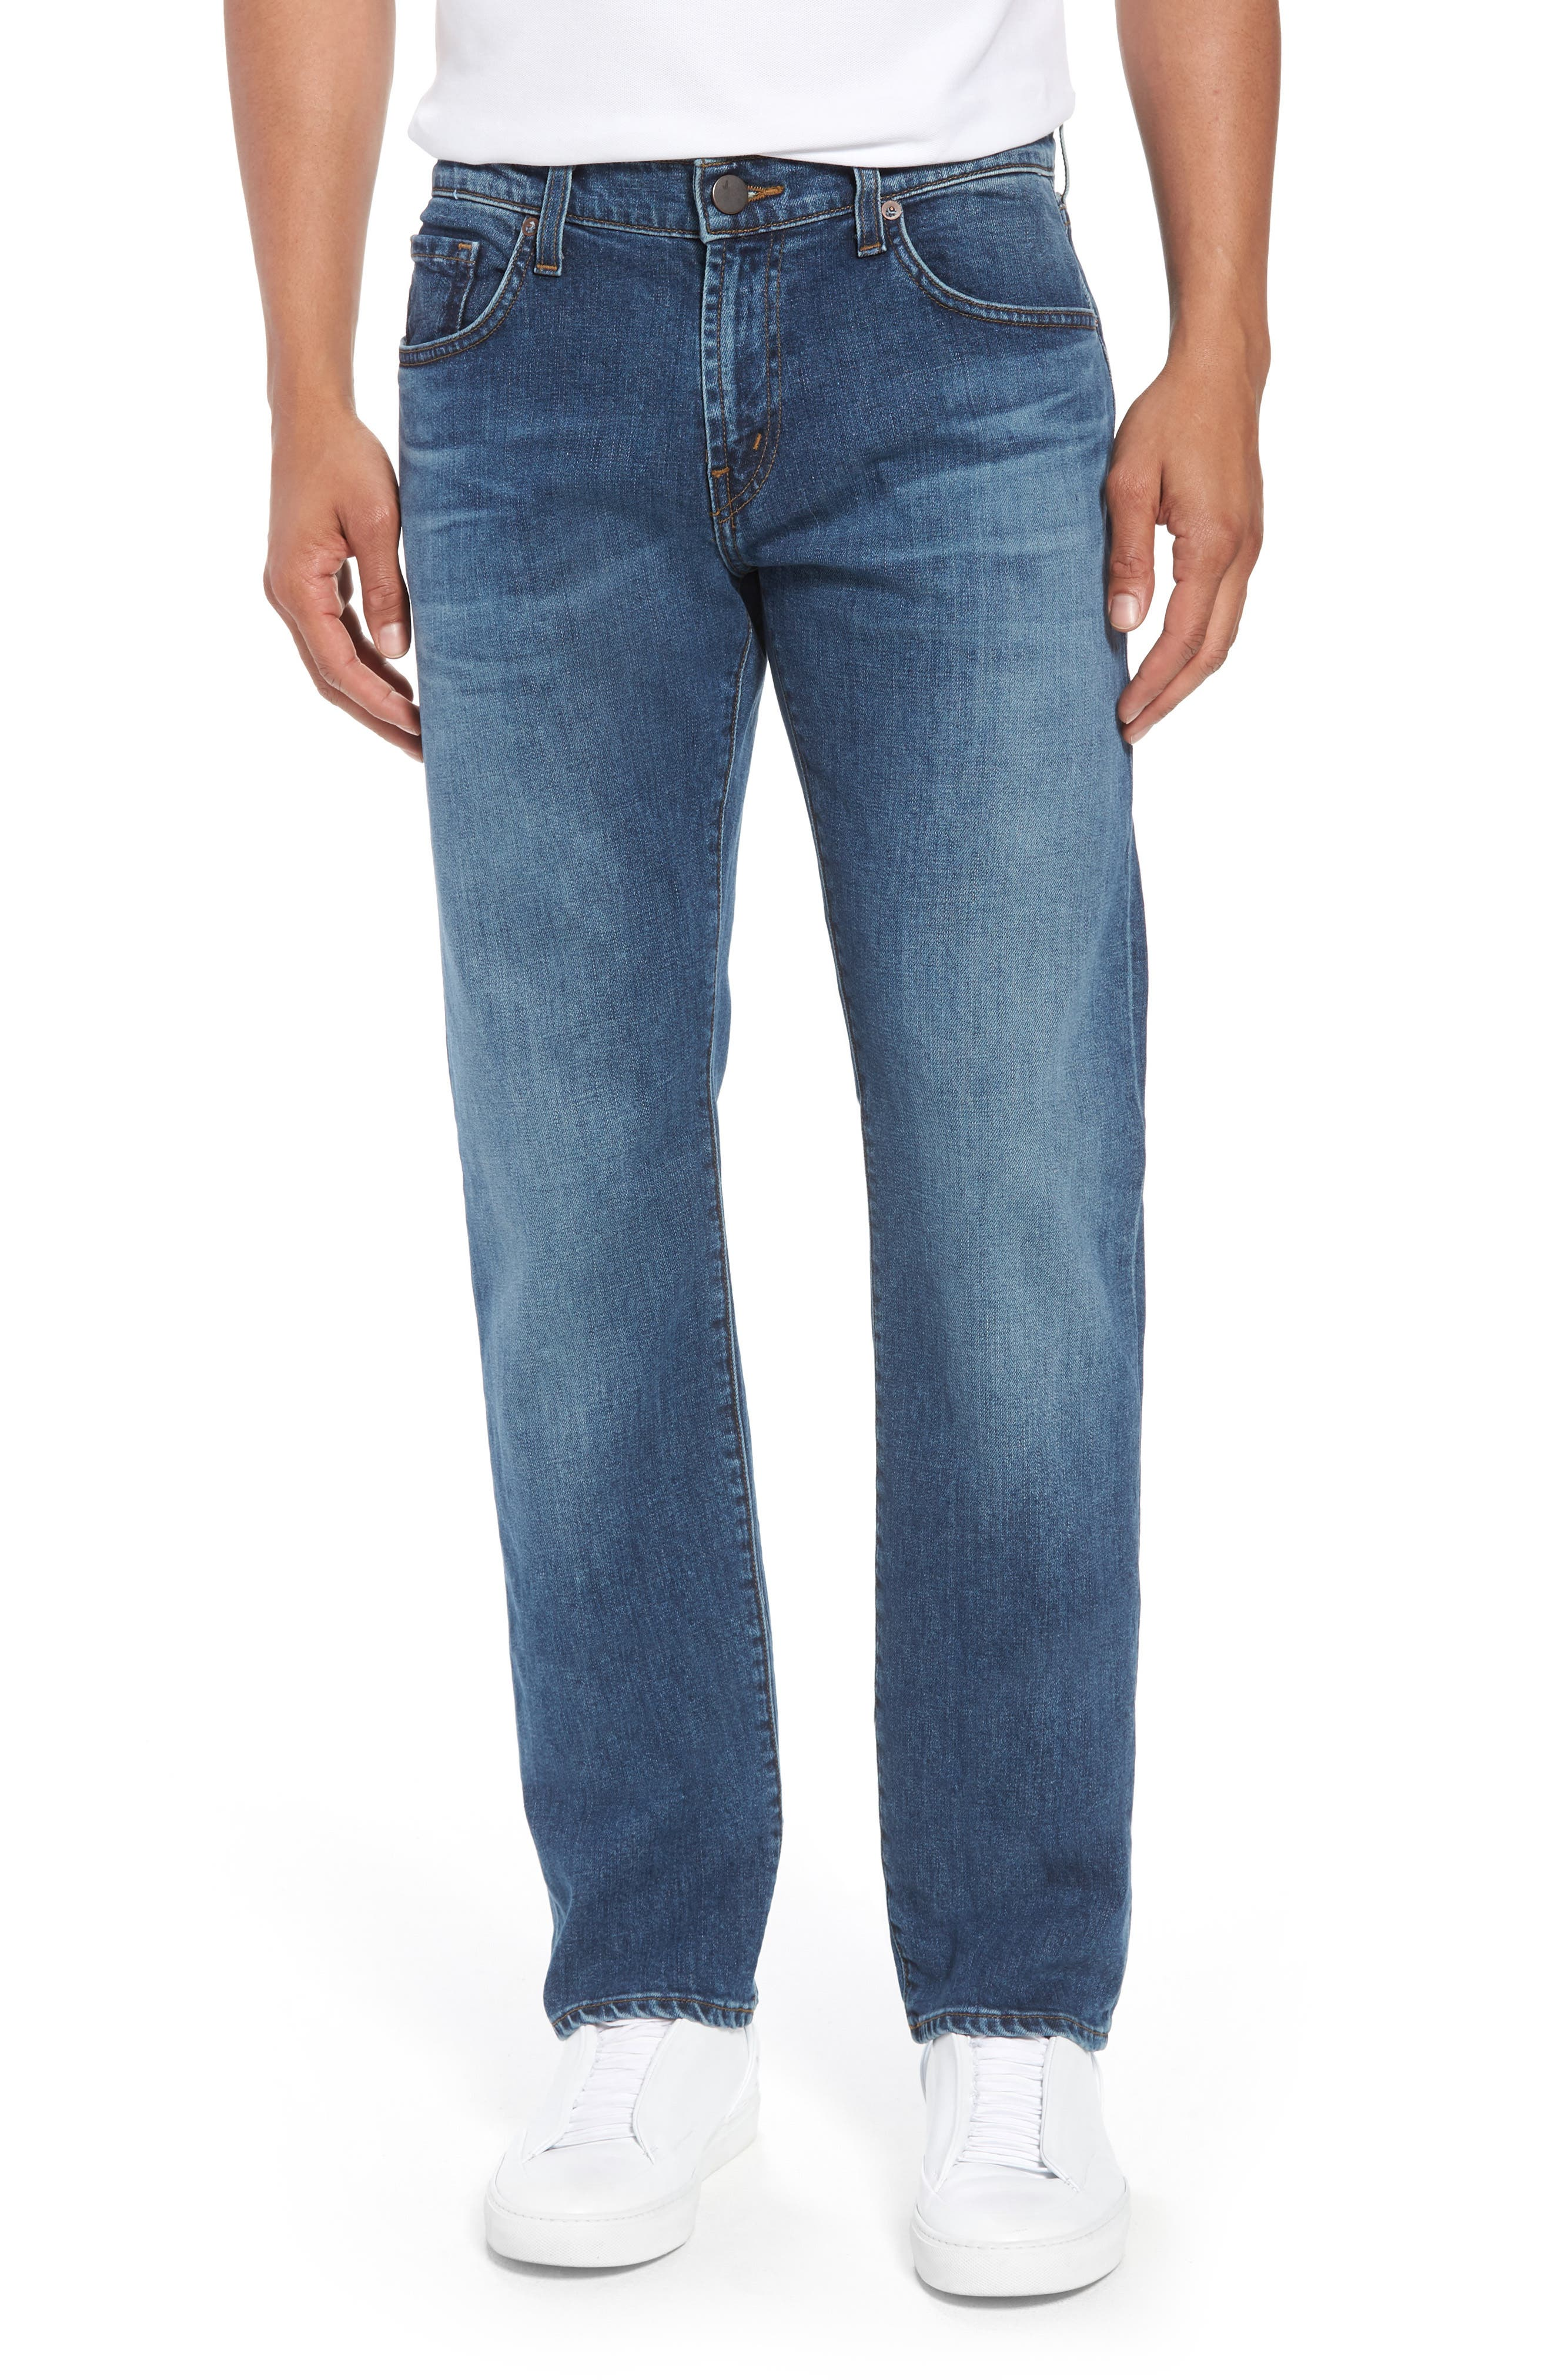 Kane Slim Straight Leg Jeans,                             Main thumbnail 1, color,                             Barva